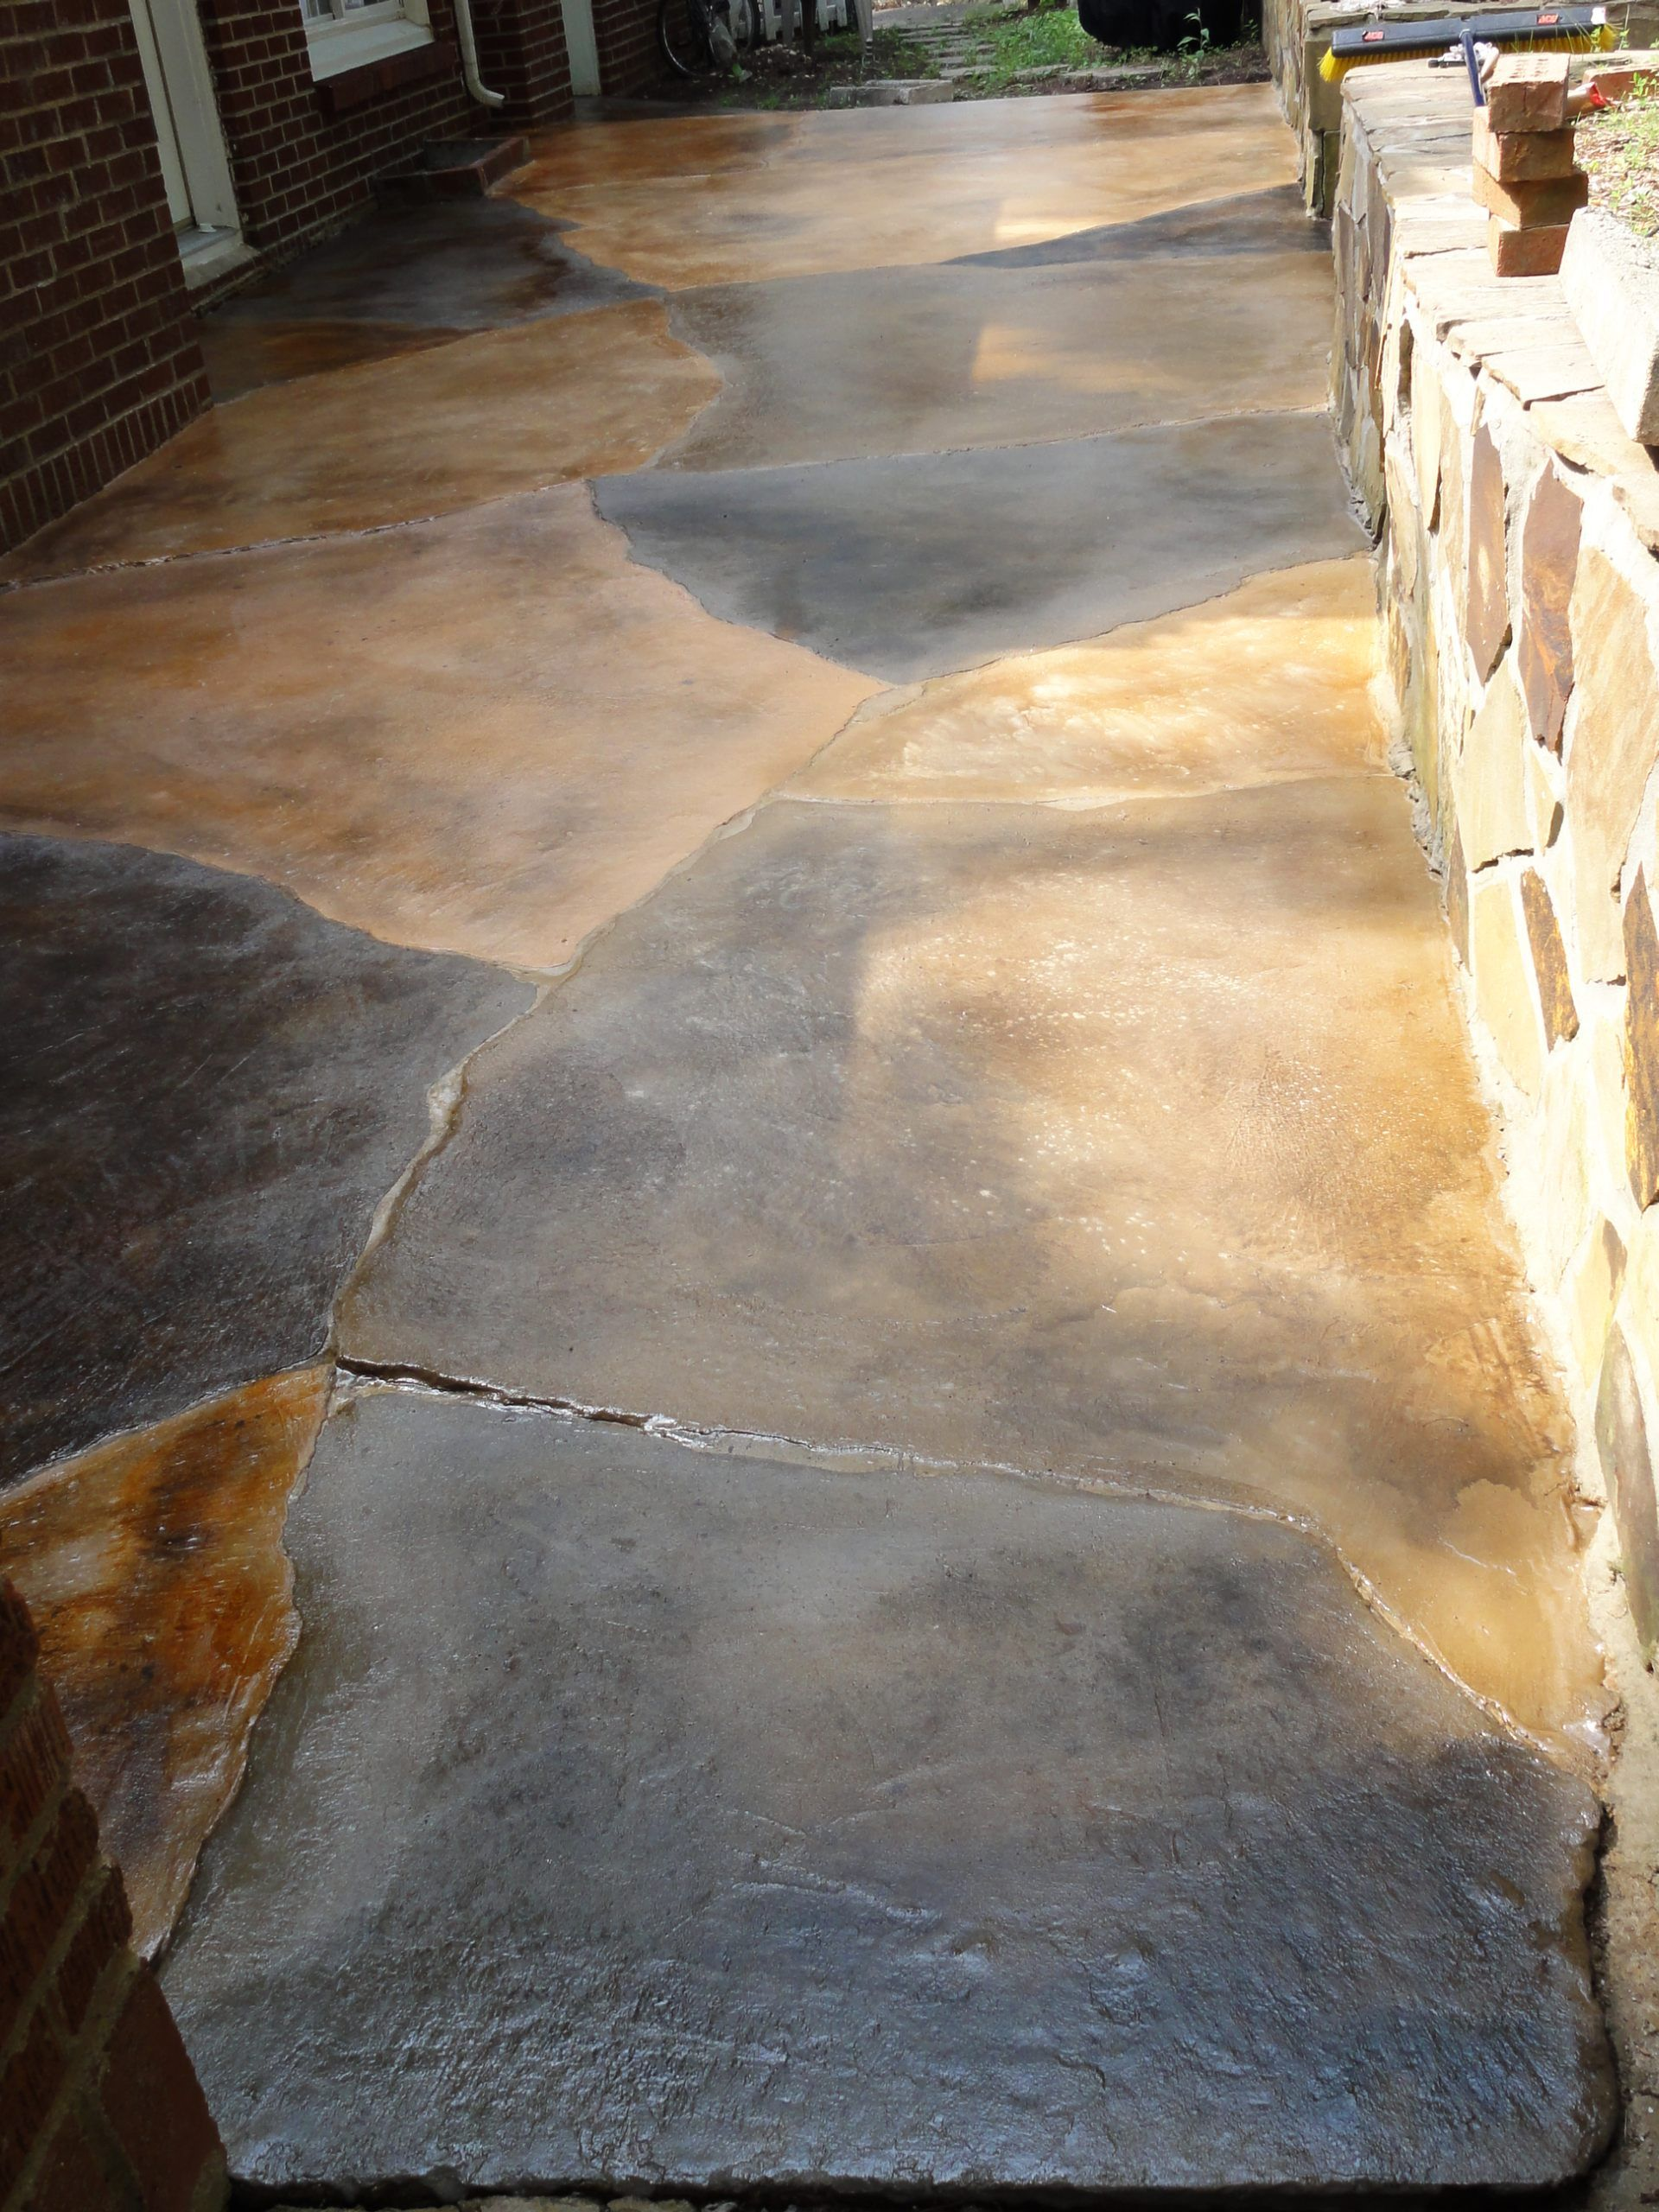 Ed Patio Concrete Stain Existing S As Mortar Lines To Create The Earance Of Large Stones